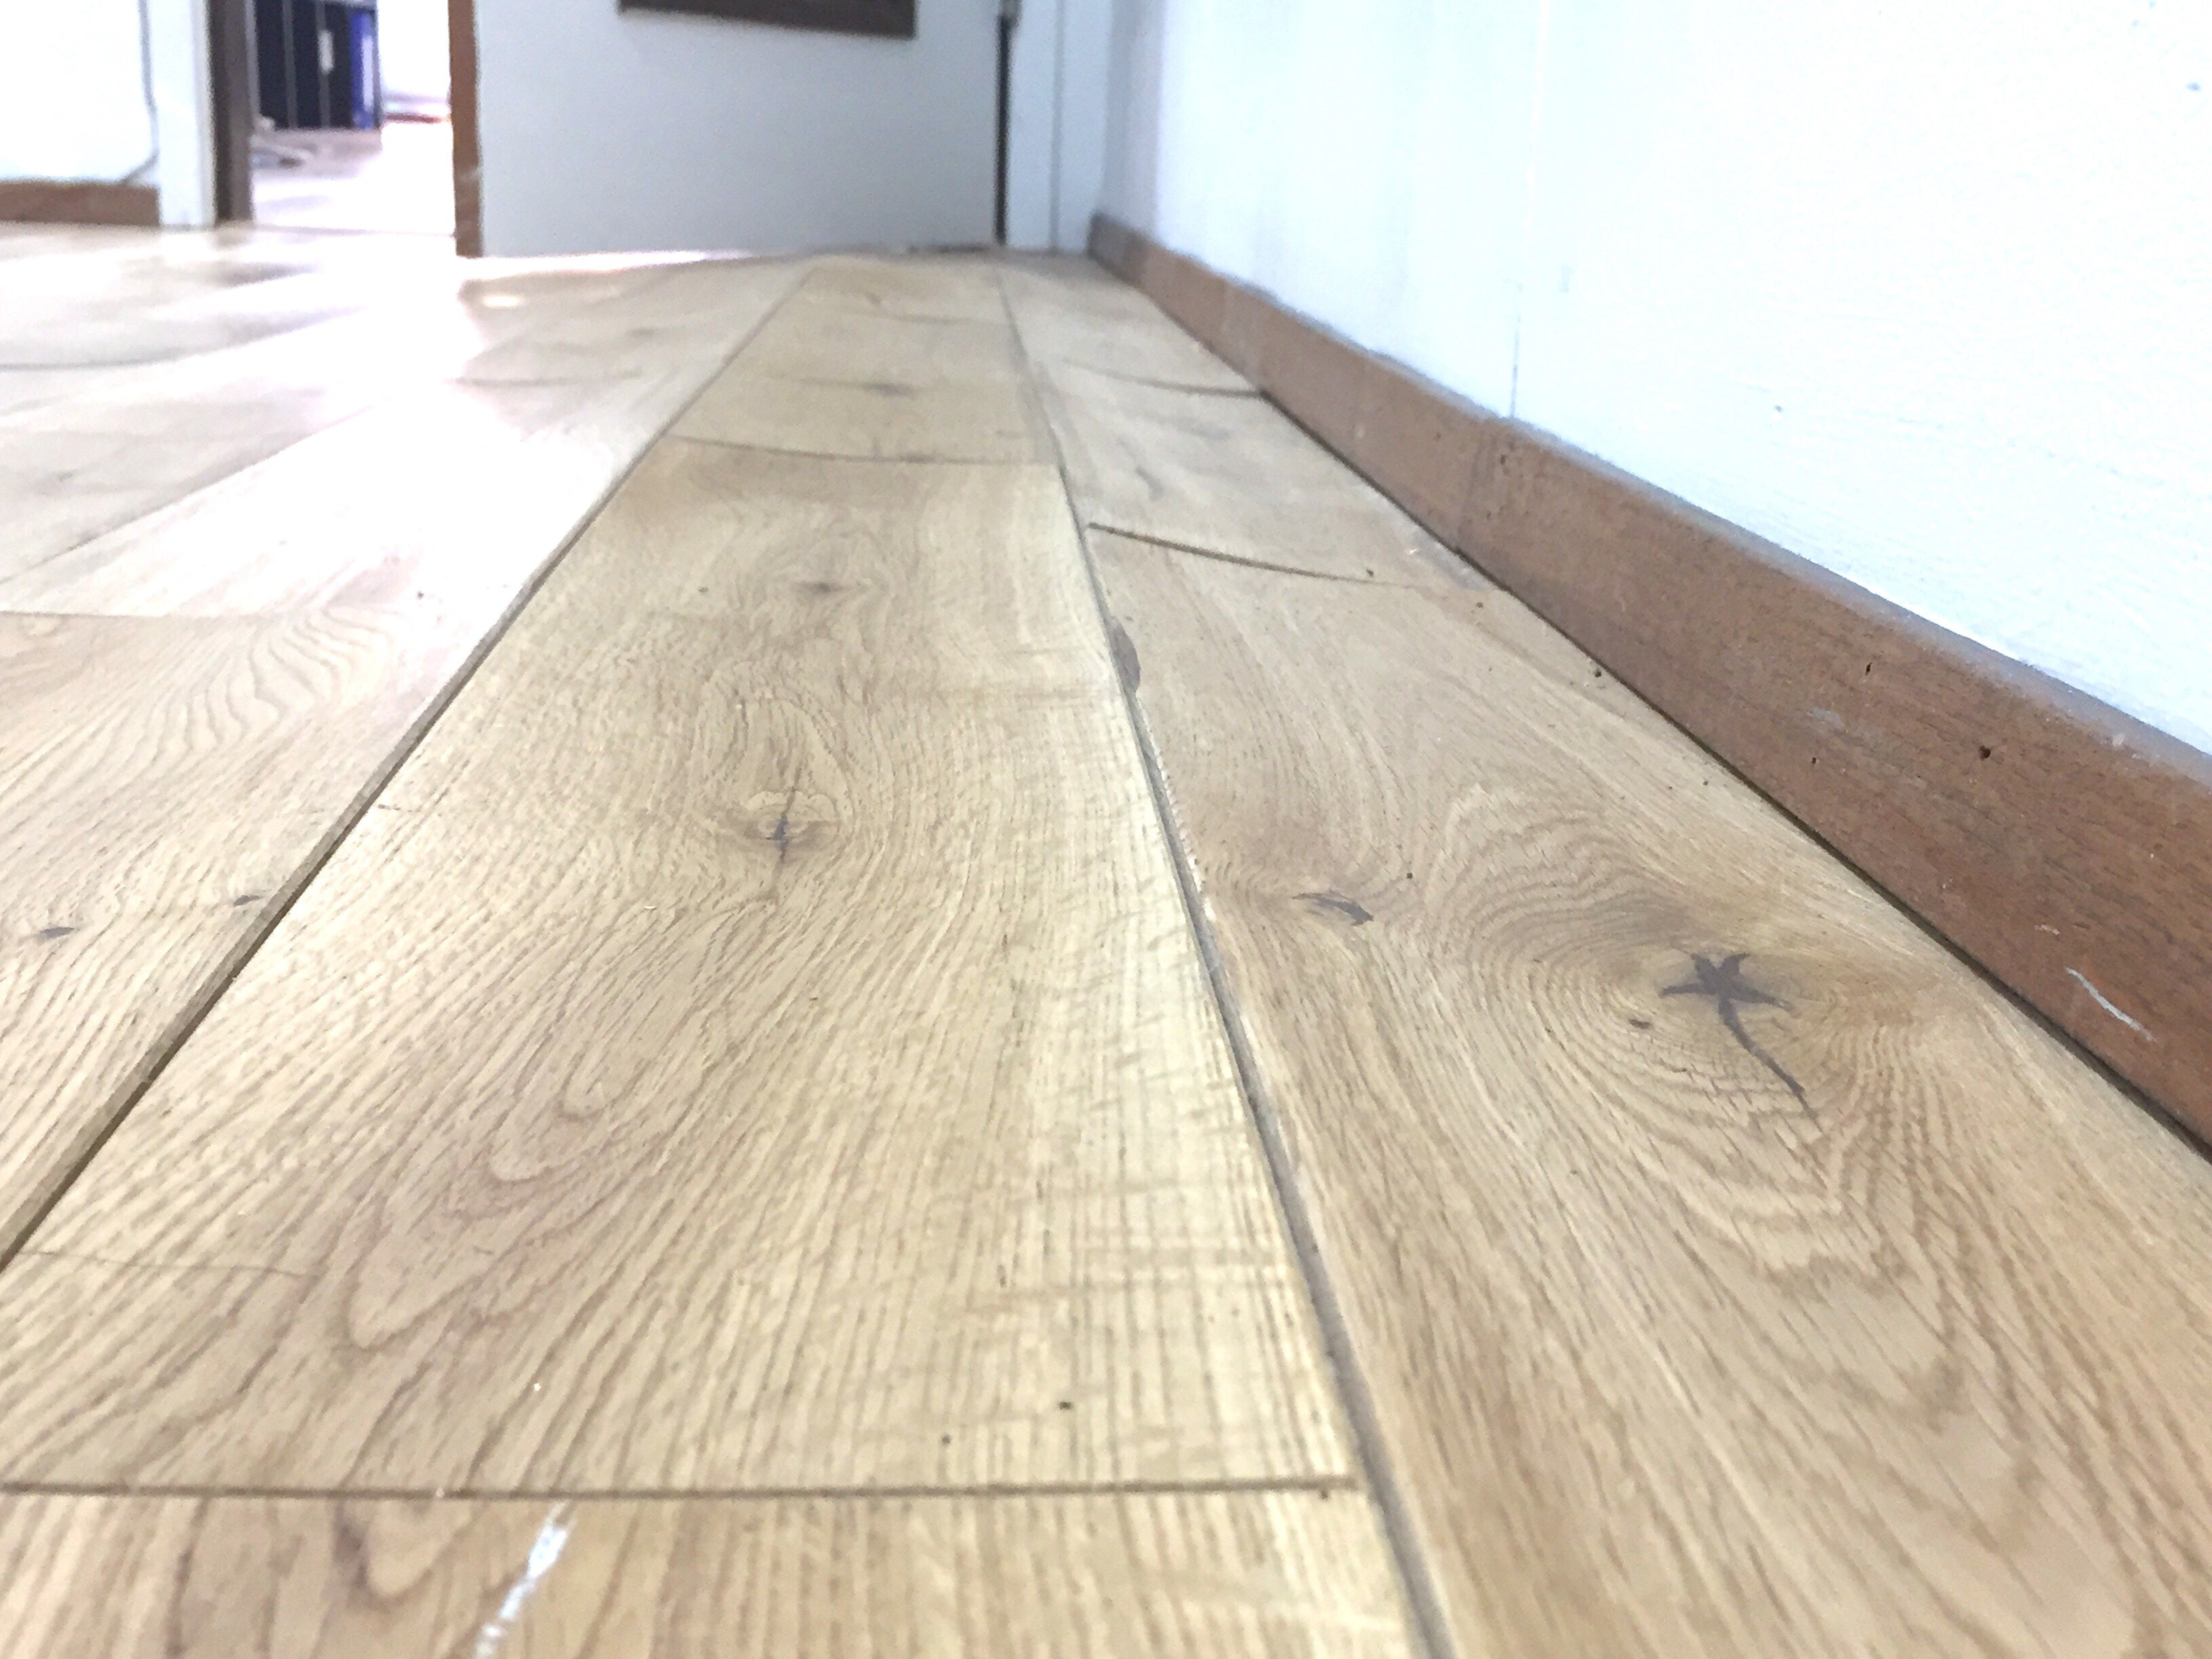 basement hardwood floor buckling and cupping